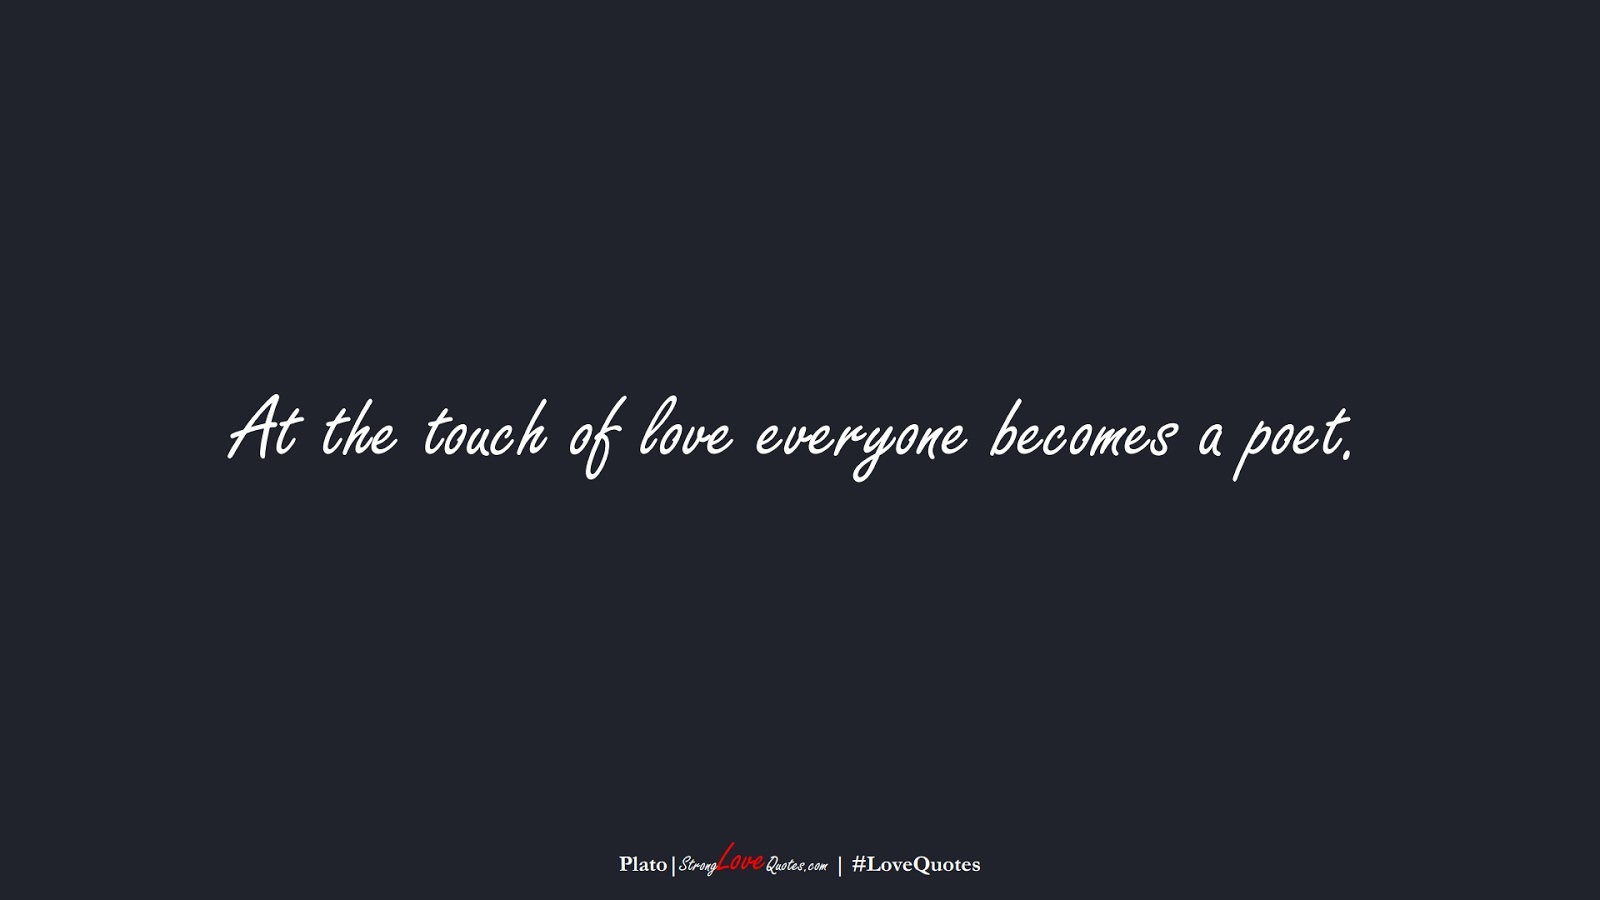 At the touch of love everyone becomes a poet. (Plato);  #LoveQuotes